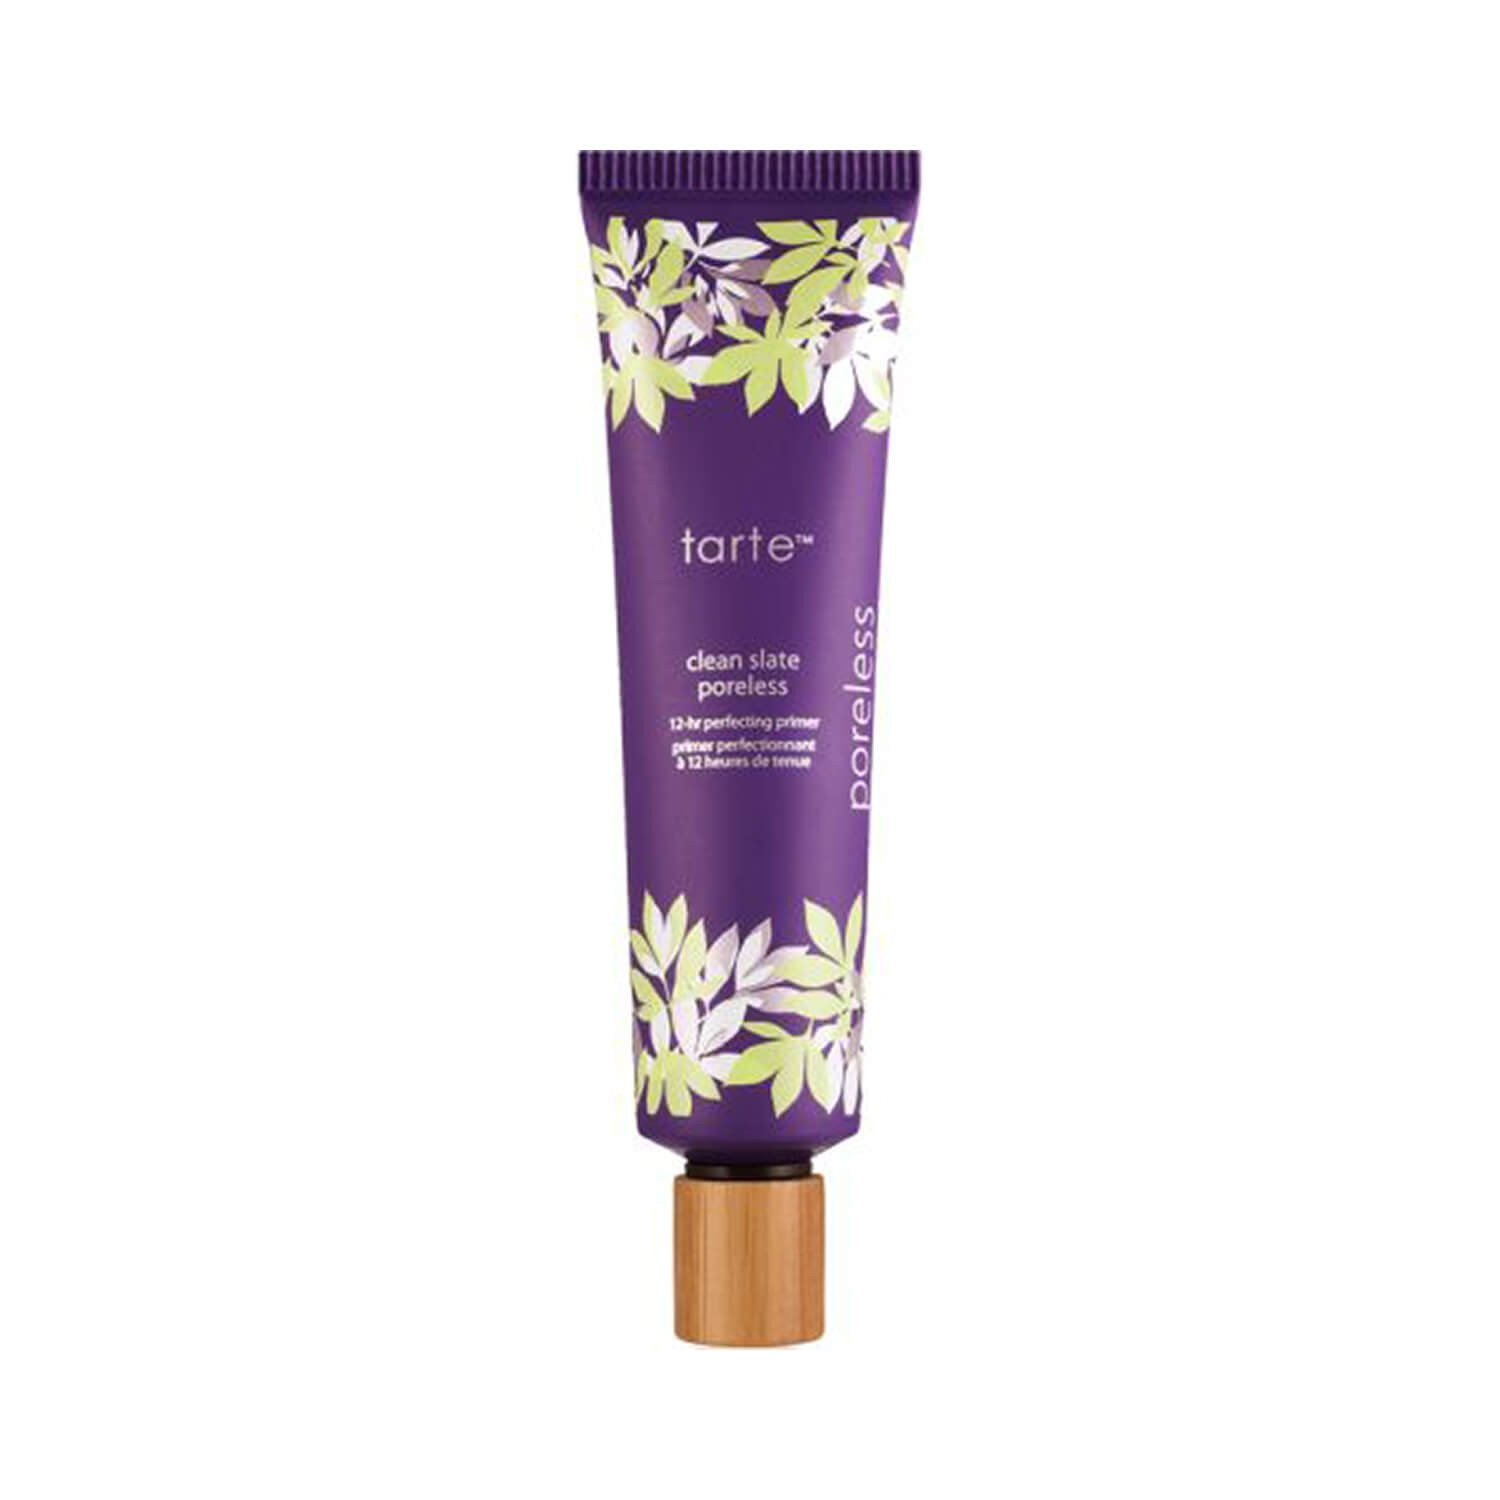 Tarte Cosmetics Poreless Perfecting Primer